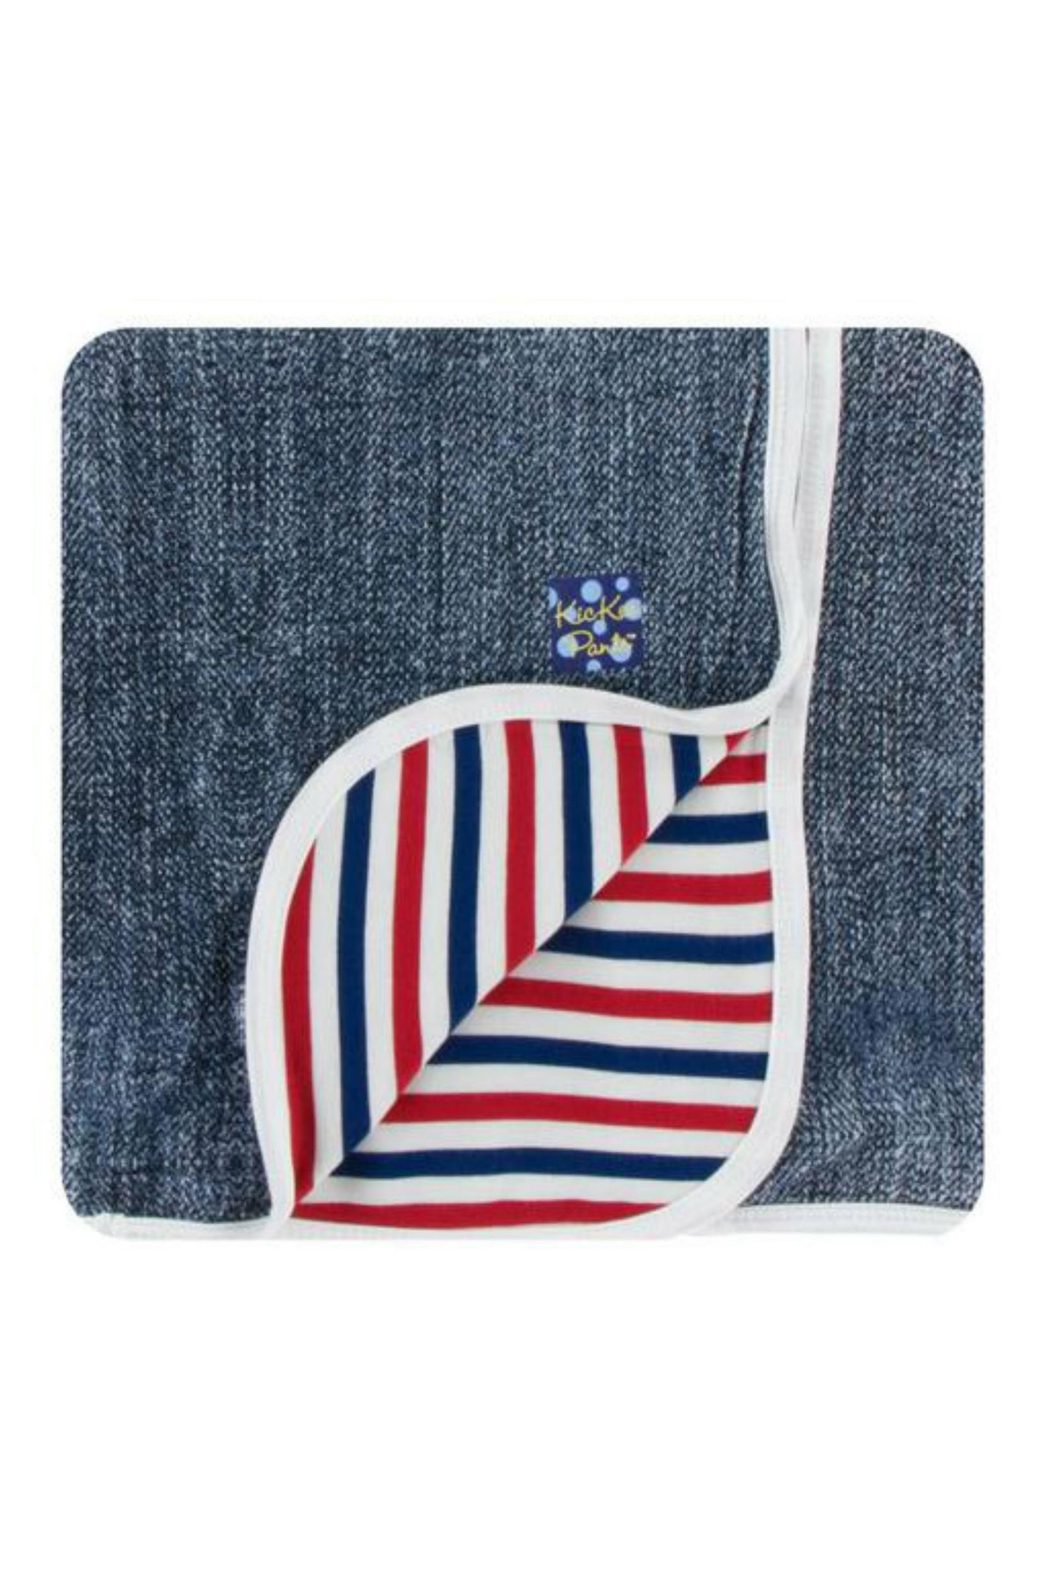 Kickee Pants Denim Toddler-Blanket - Main Image